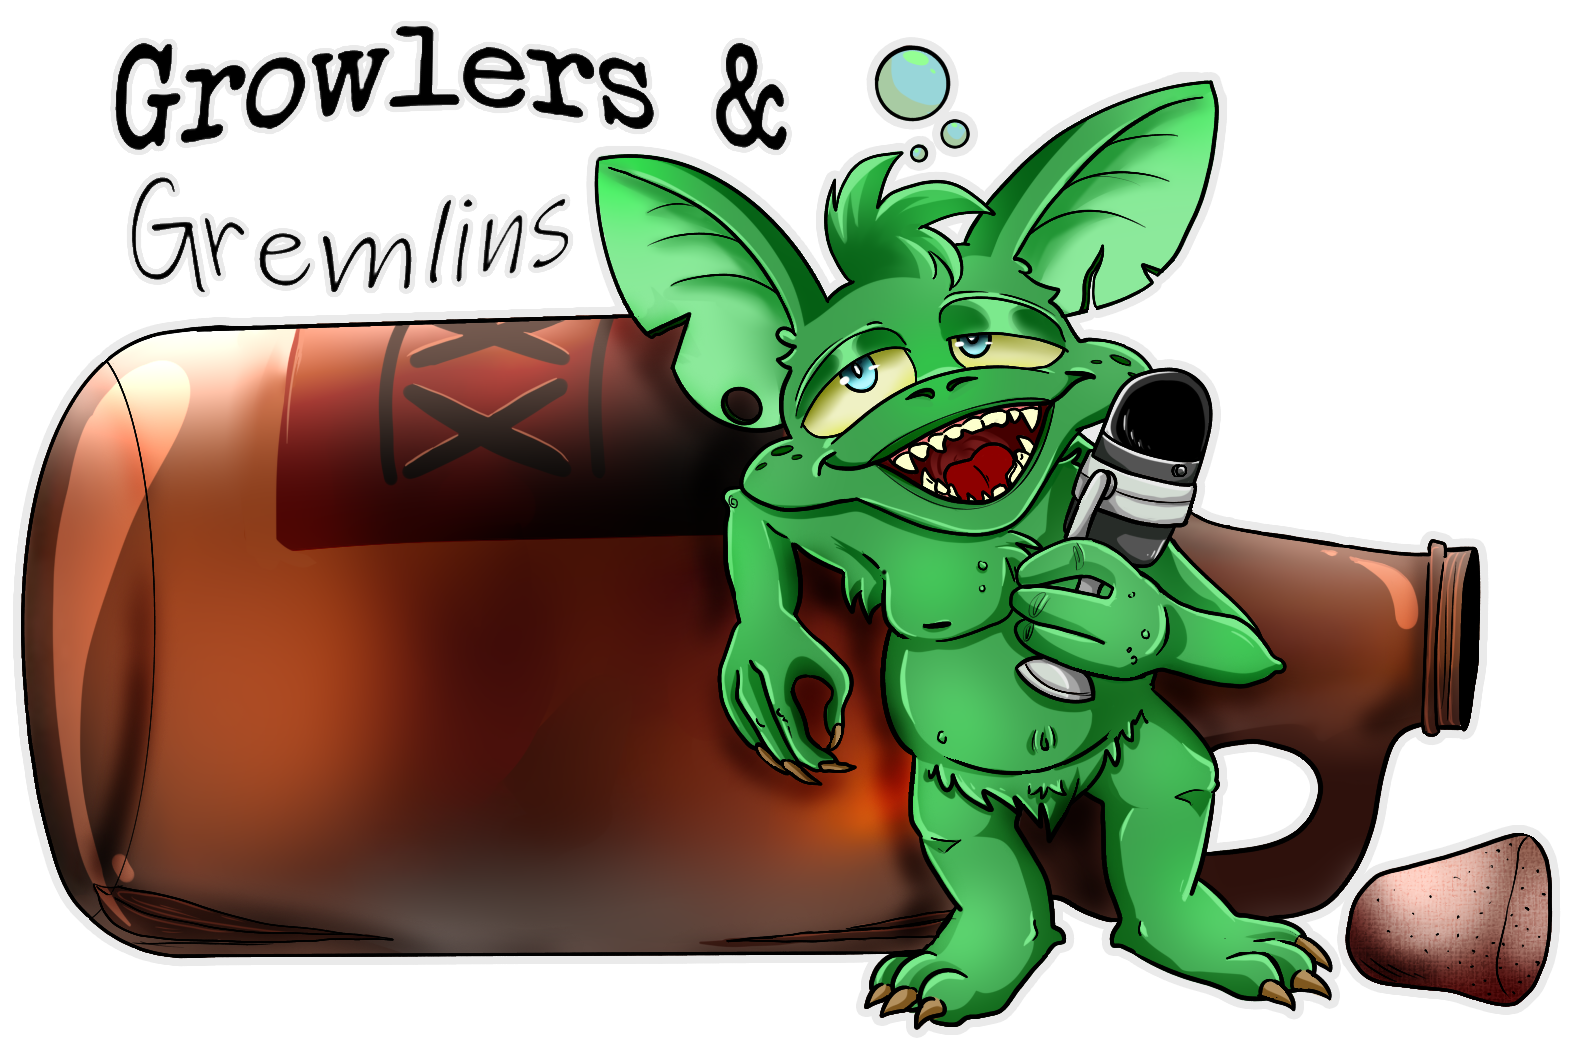 Growlers and Gremlins